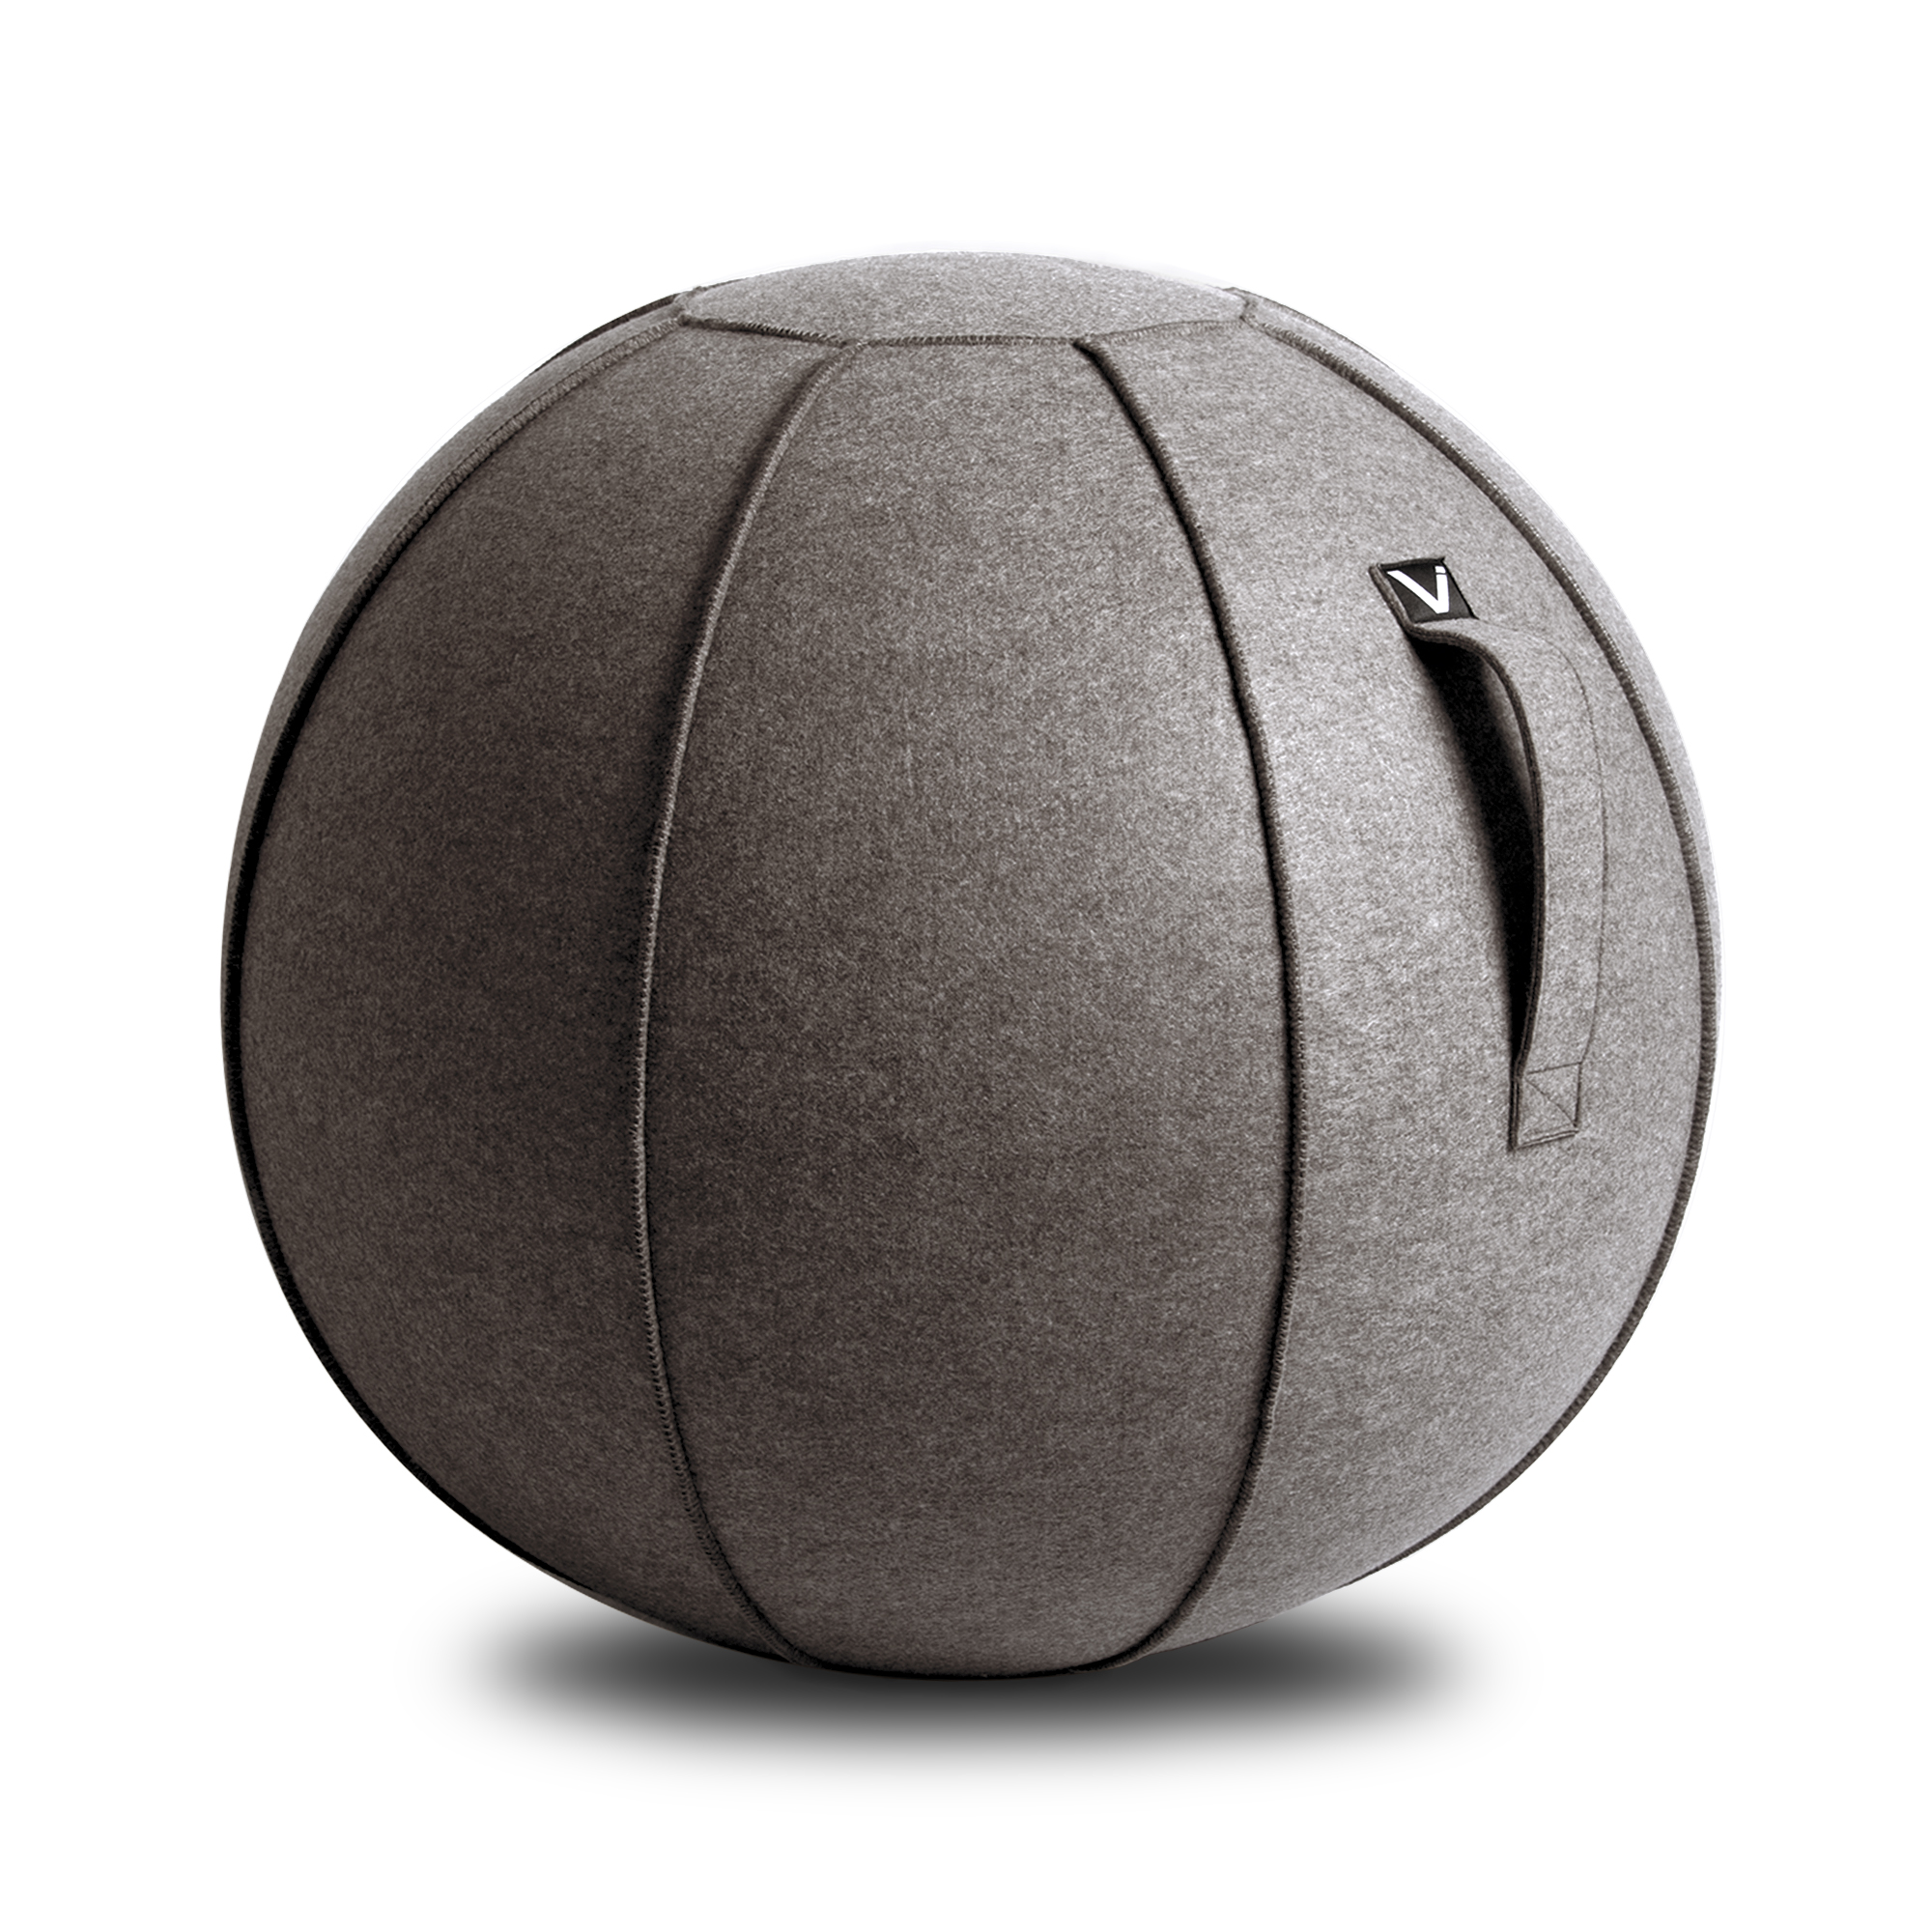 Ball Chair Office Chair Swiss Ball Pilates Physio Ball Exercise Ball Fintess Balls Pilates Fitness Chair 65cm Luno In Clay By Vivora